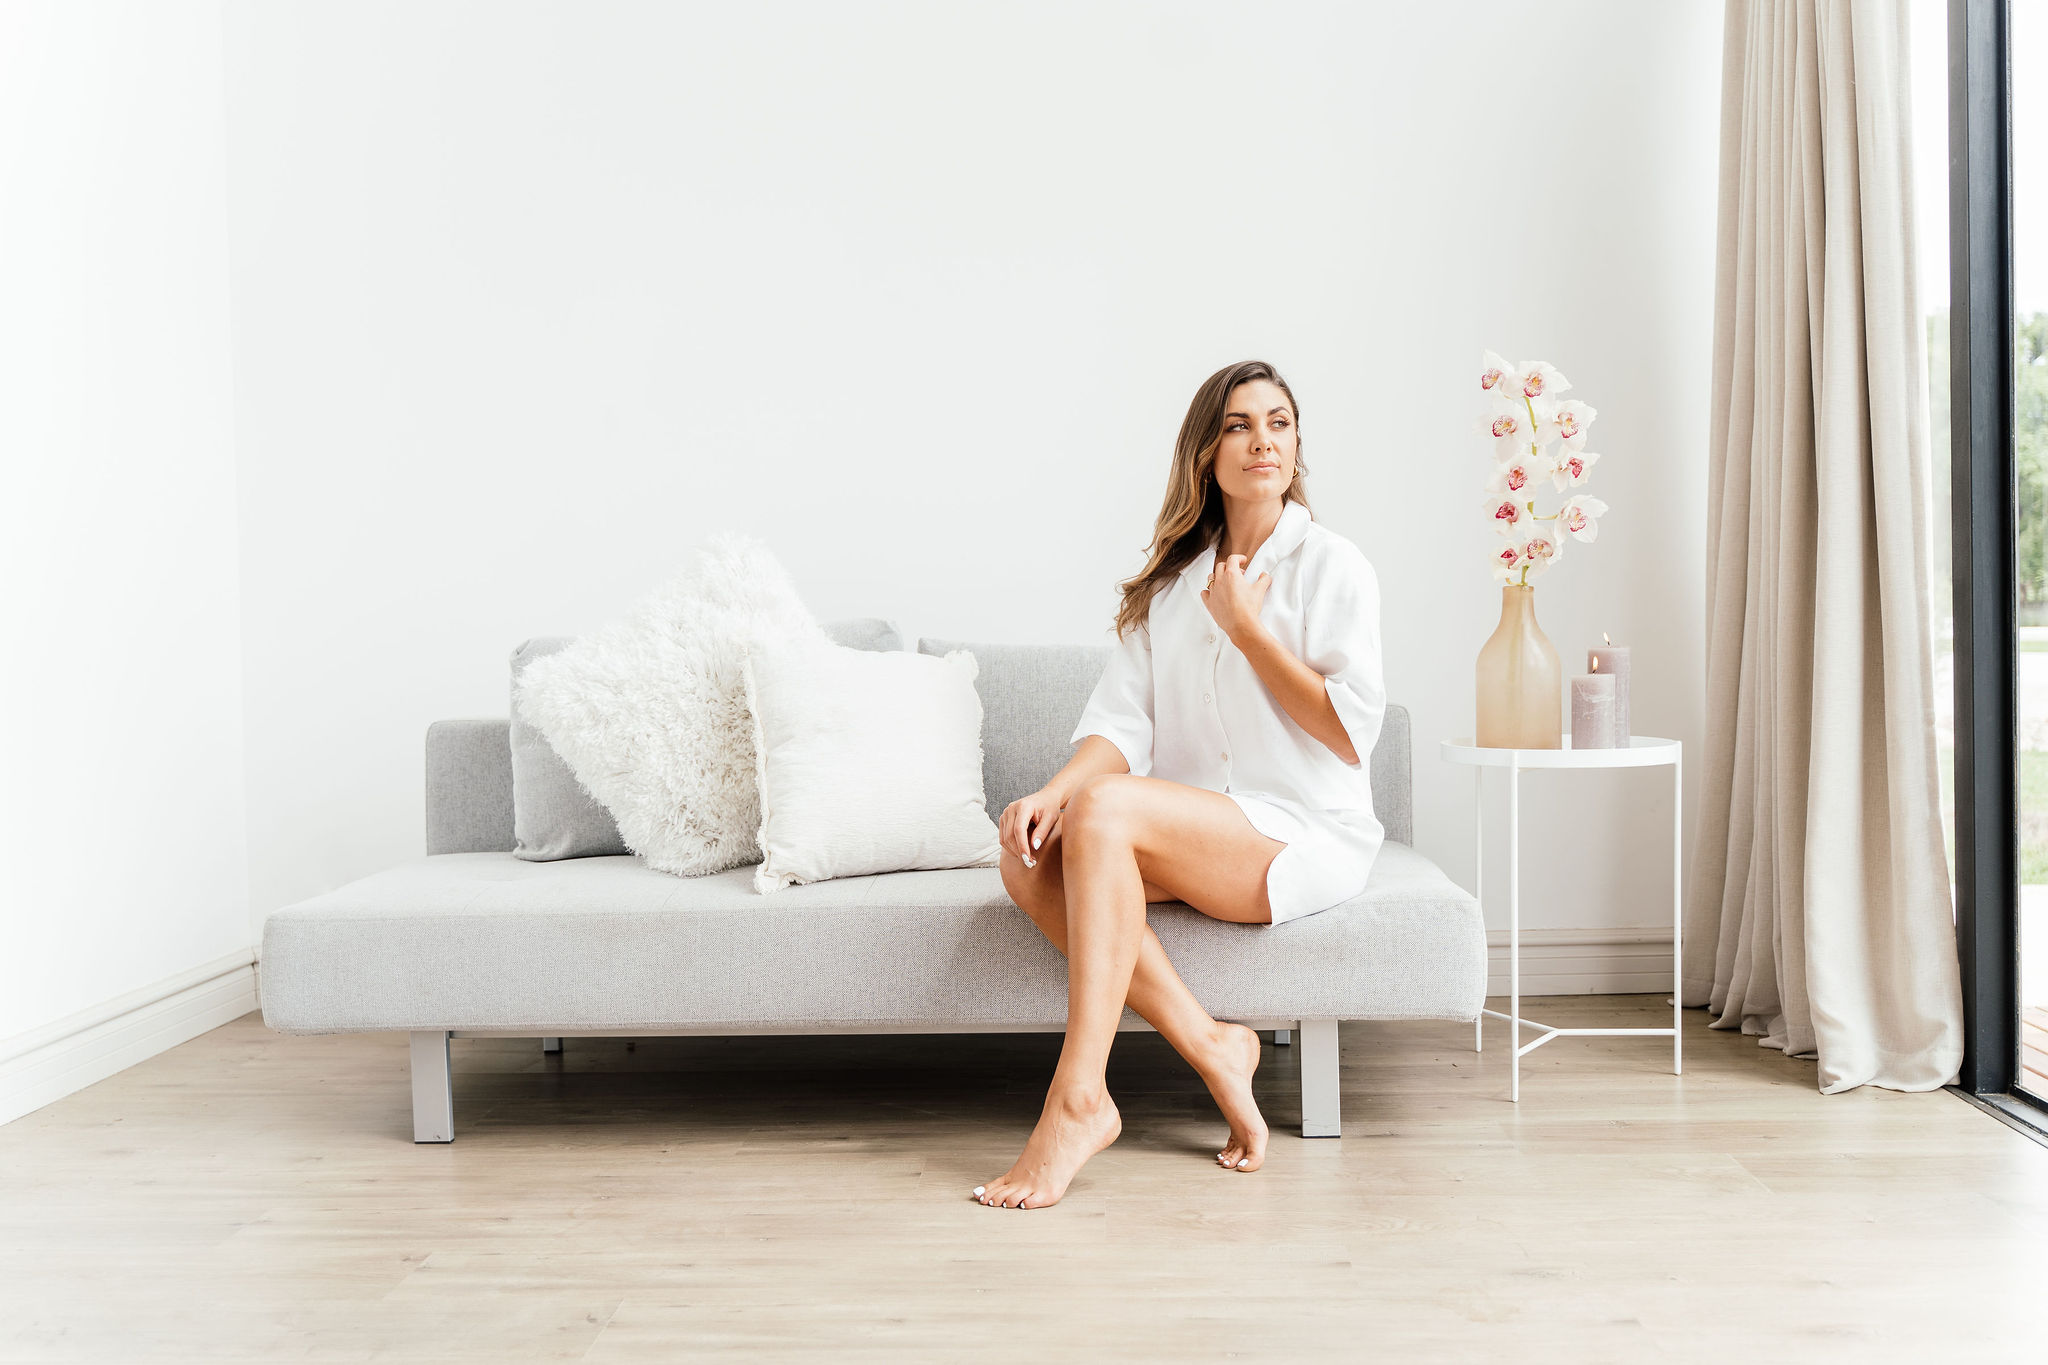 Nuvé sleepwear and loungewear returns and exchanges policy south africa online